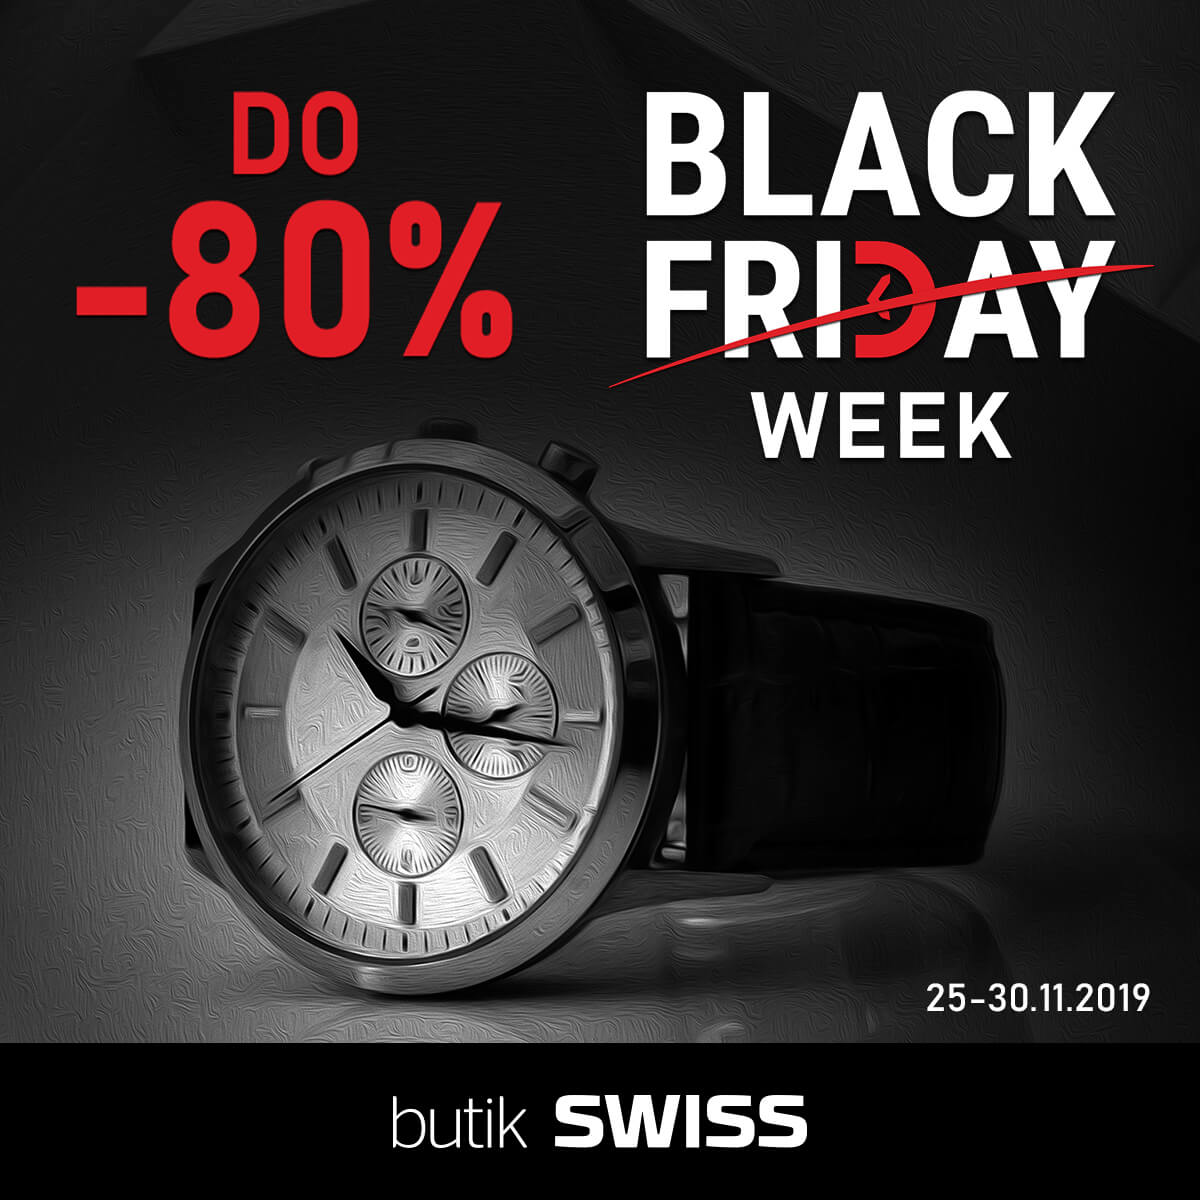 SWISS Black Friday